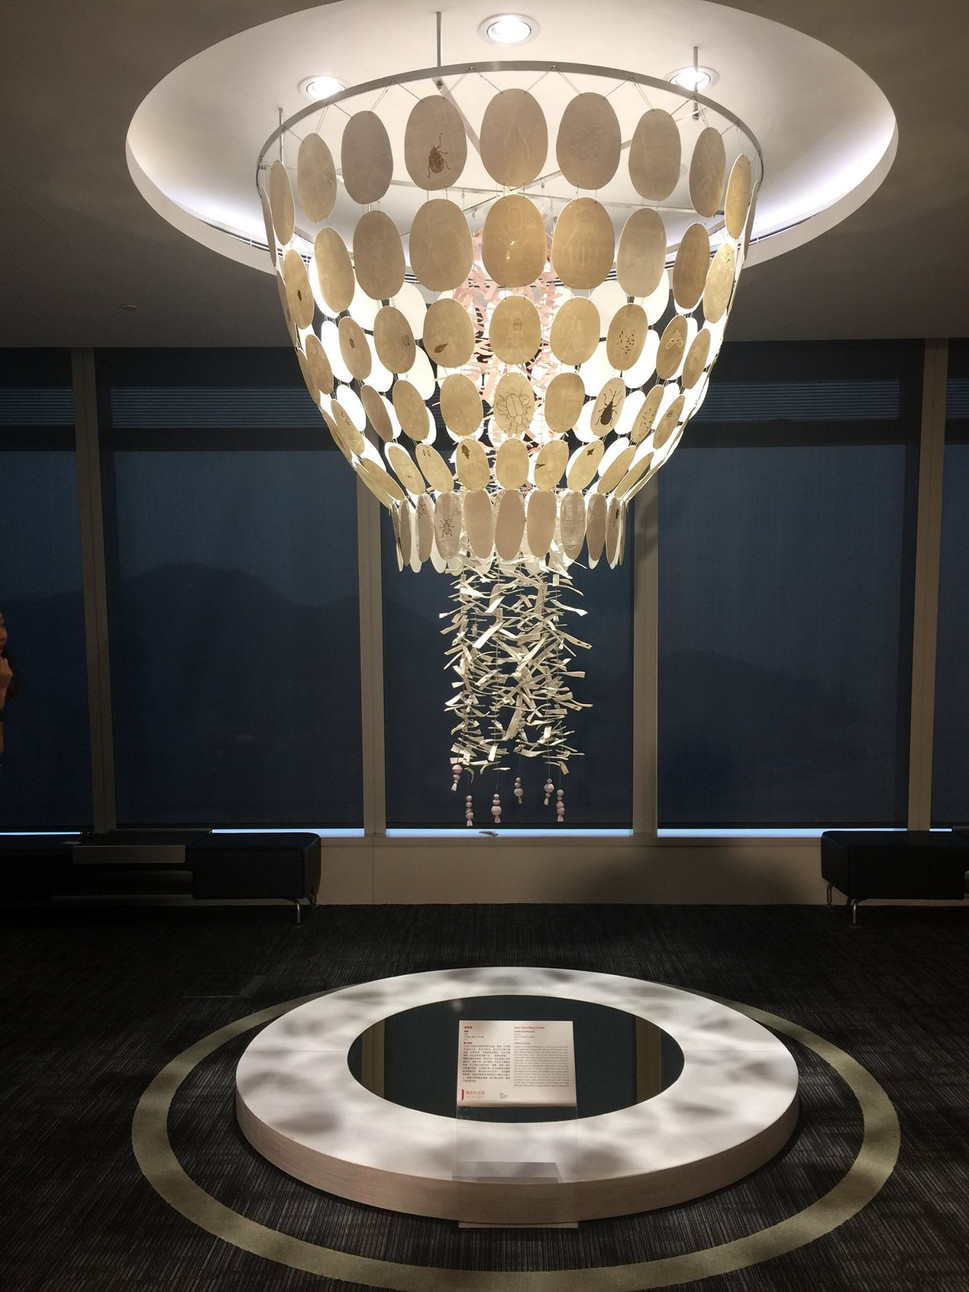 Chandelier in an exhibition